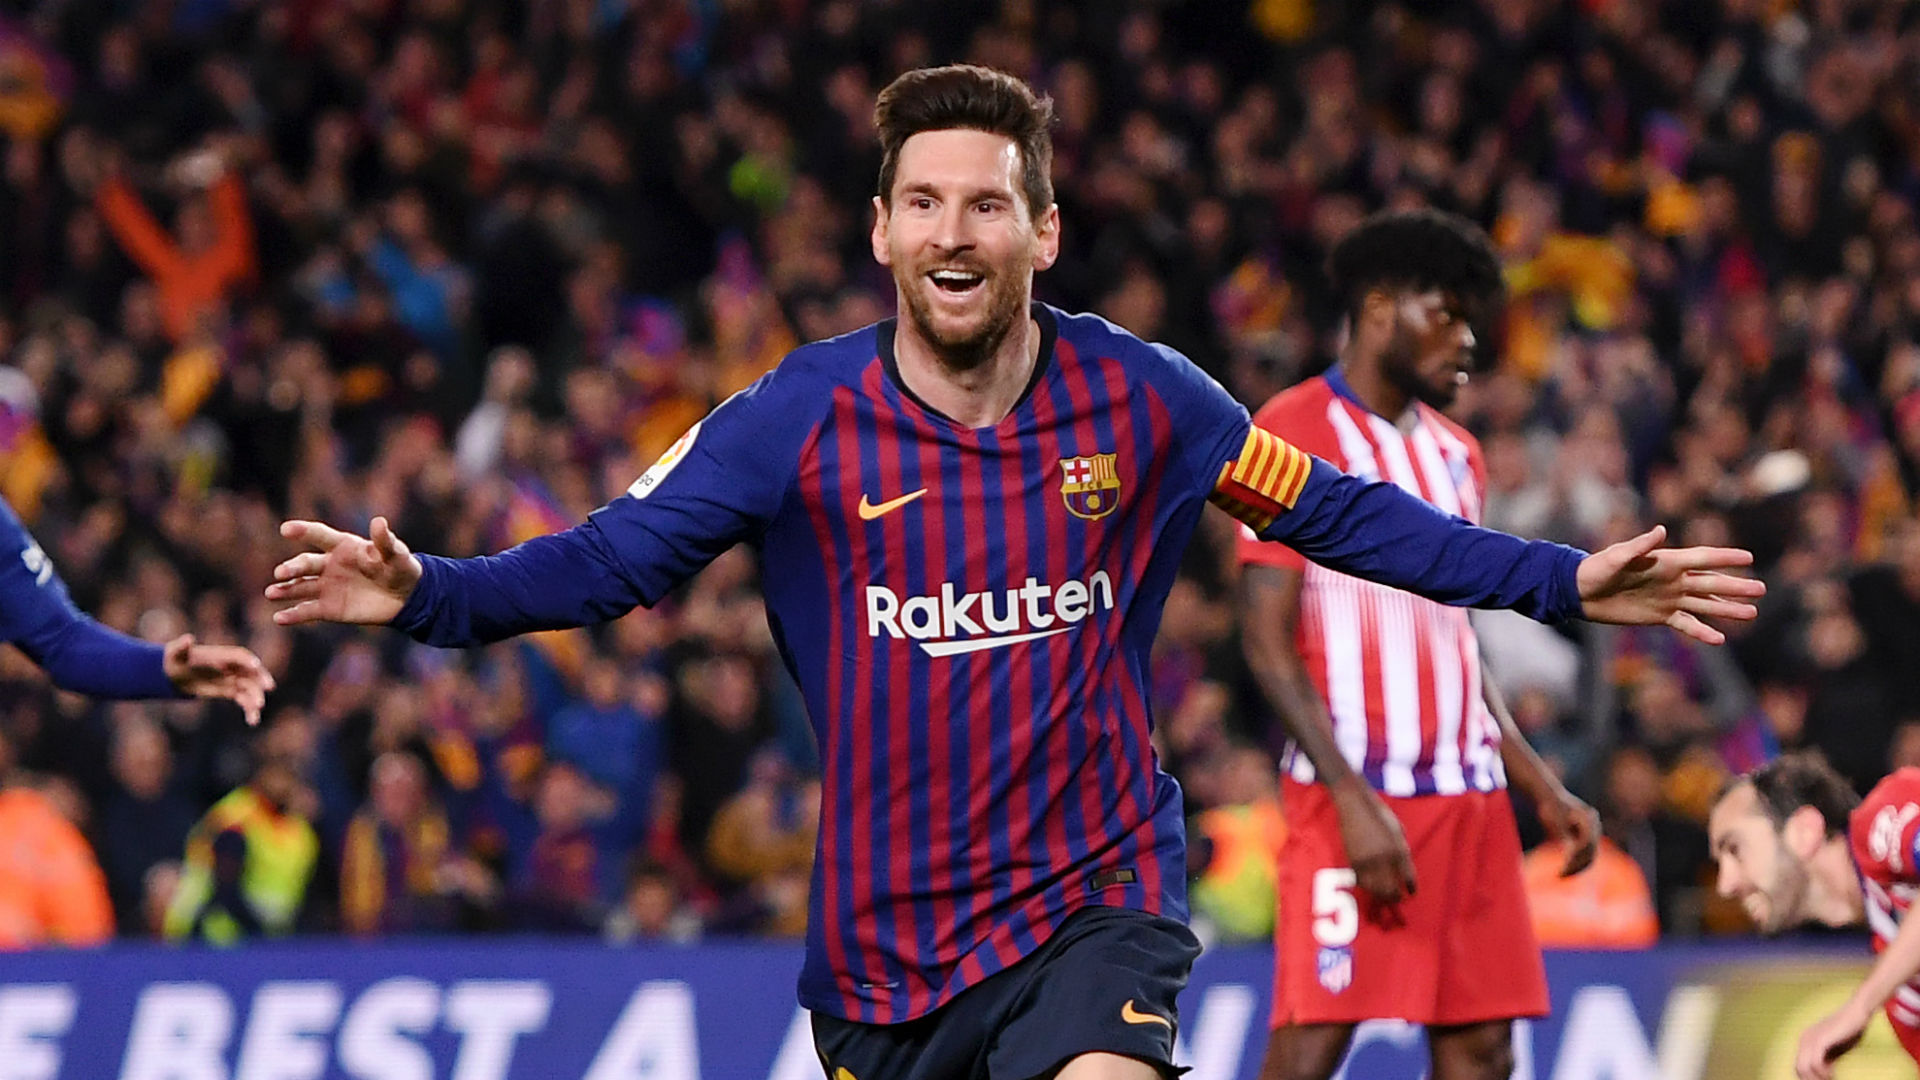 Manchester United face daunting Barcelona and Messi records - Champions League in Opta numbers